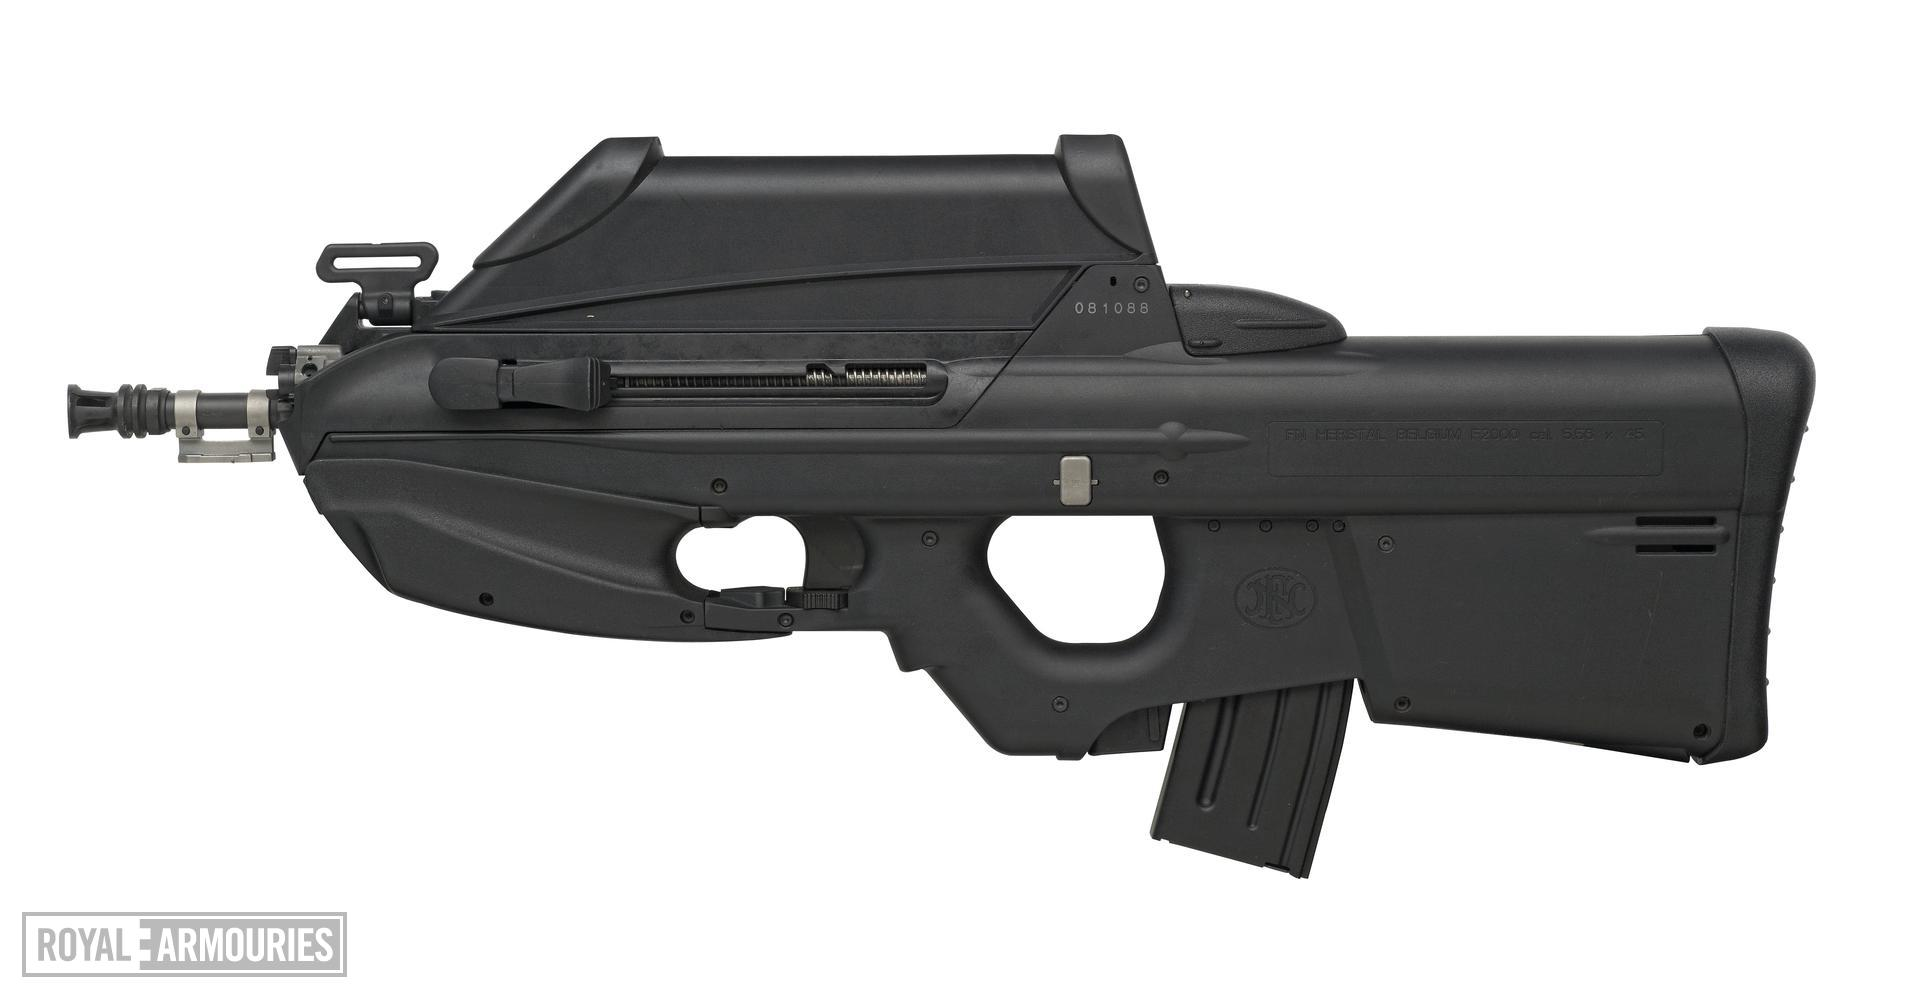 Centrefire automatic rifle - FN 2000